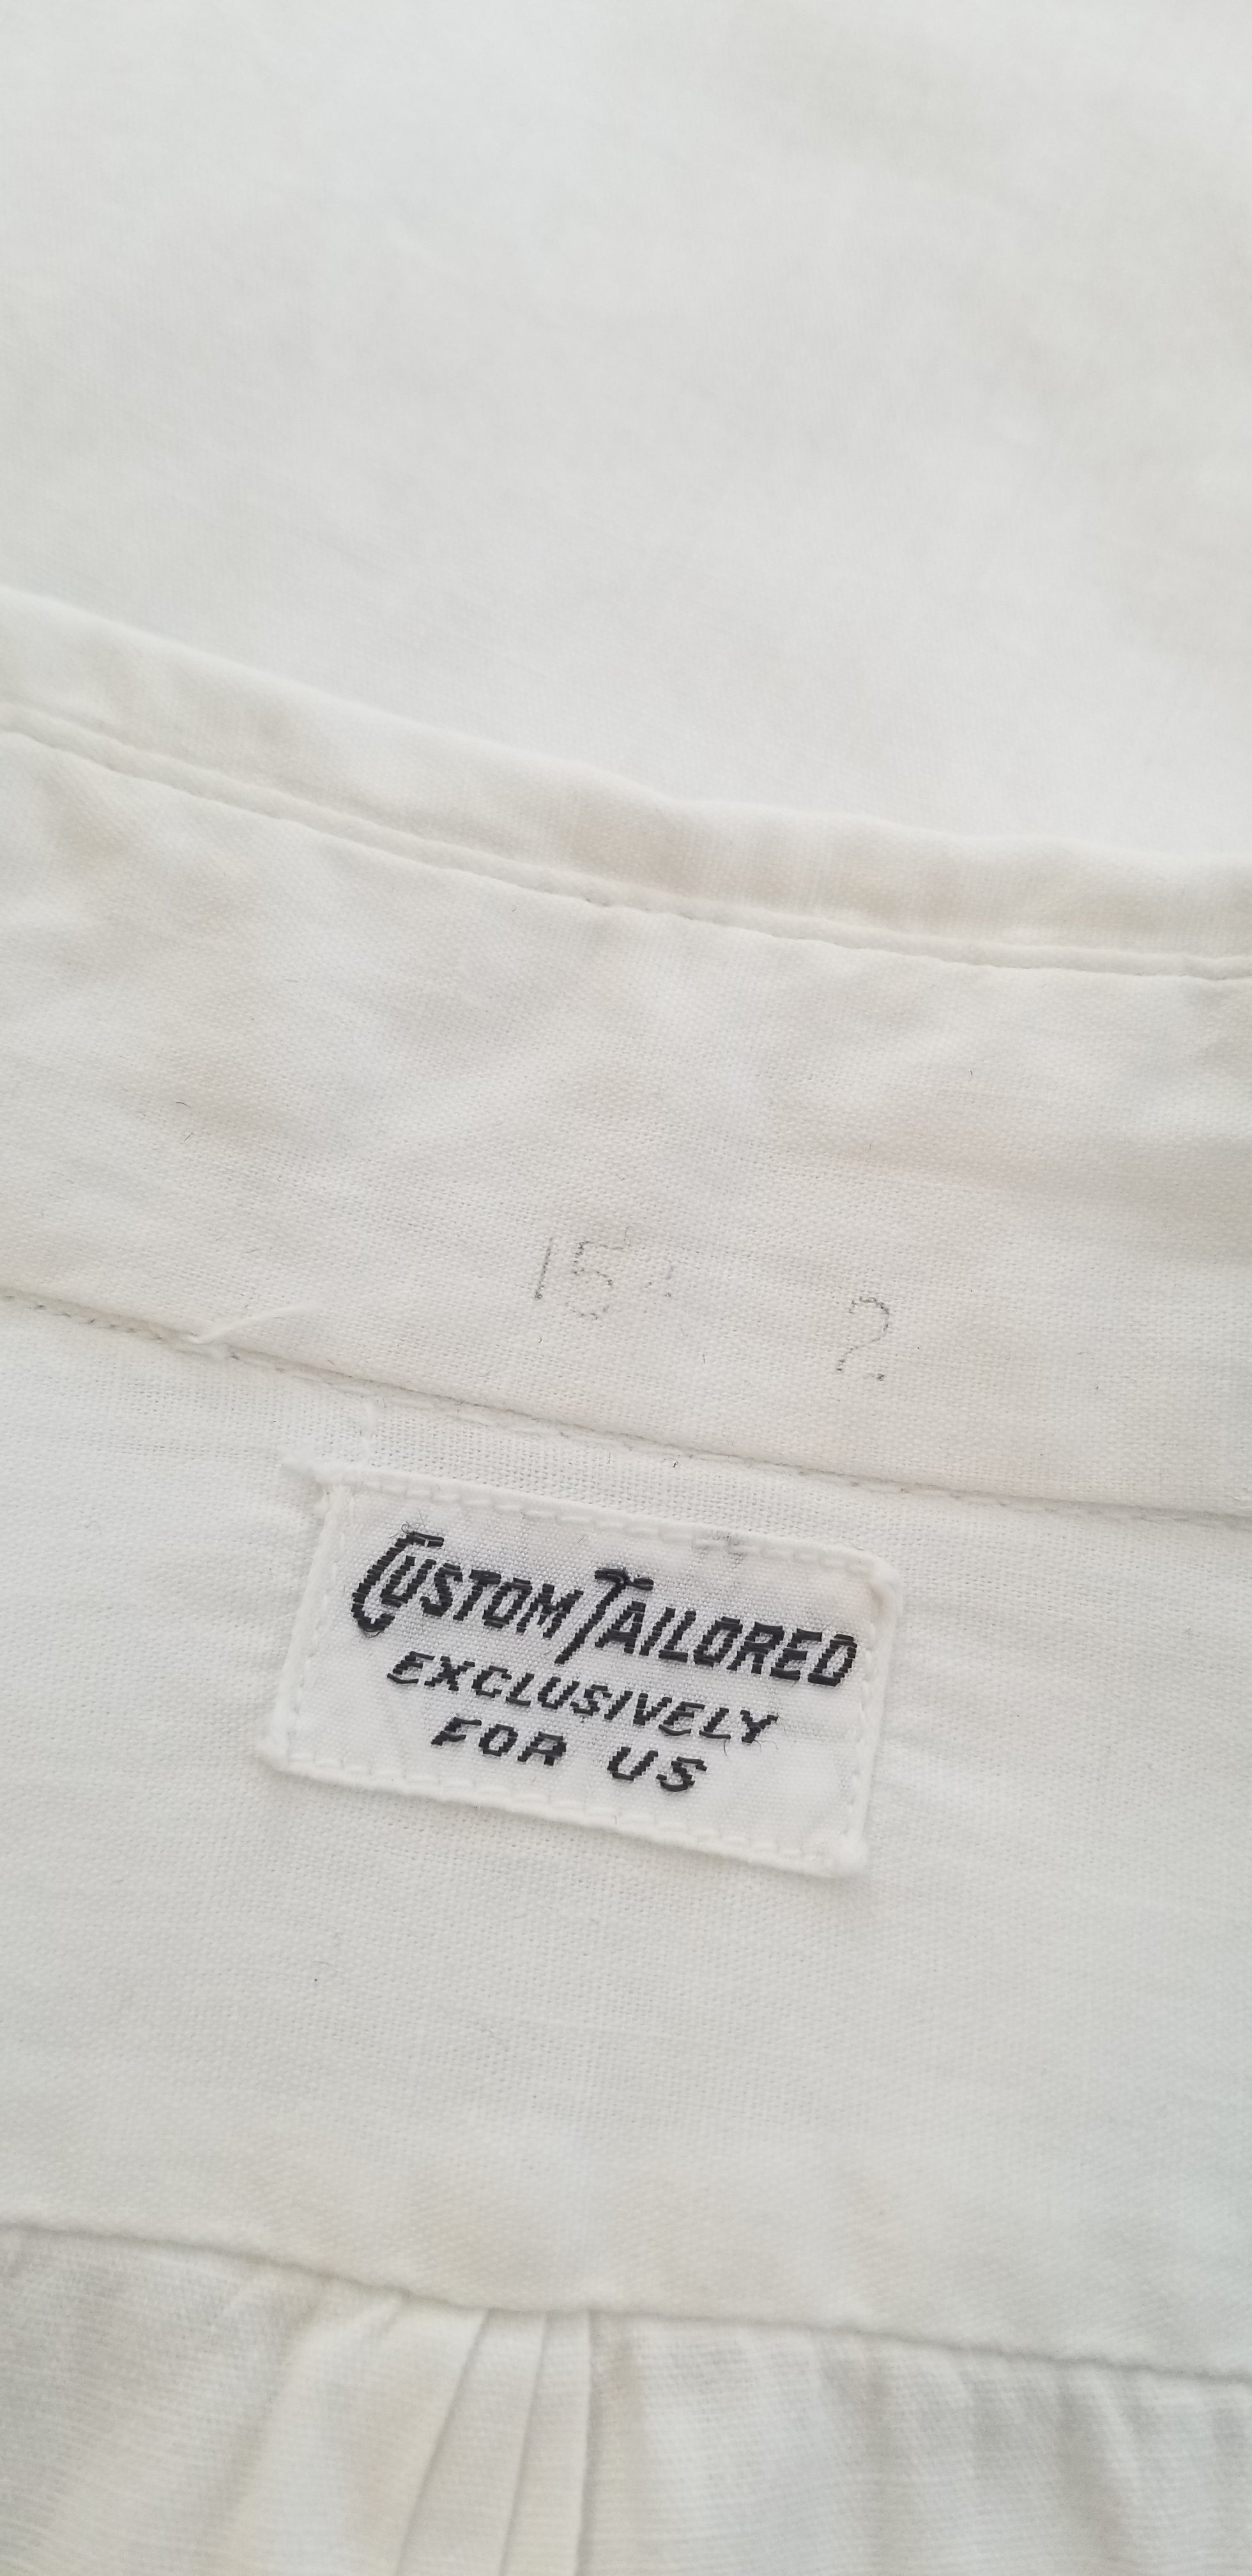 30's/40's Men's White Cotton Side Gusset Dress Shirt FREE SHIPPING TO THE U.S.